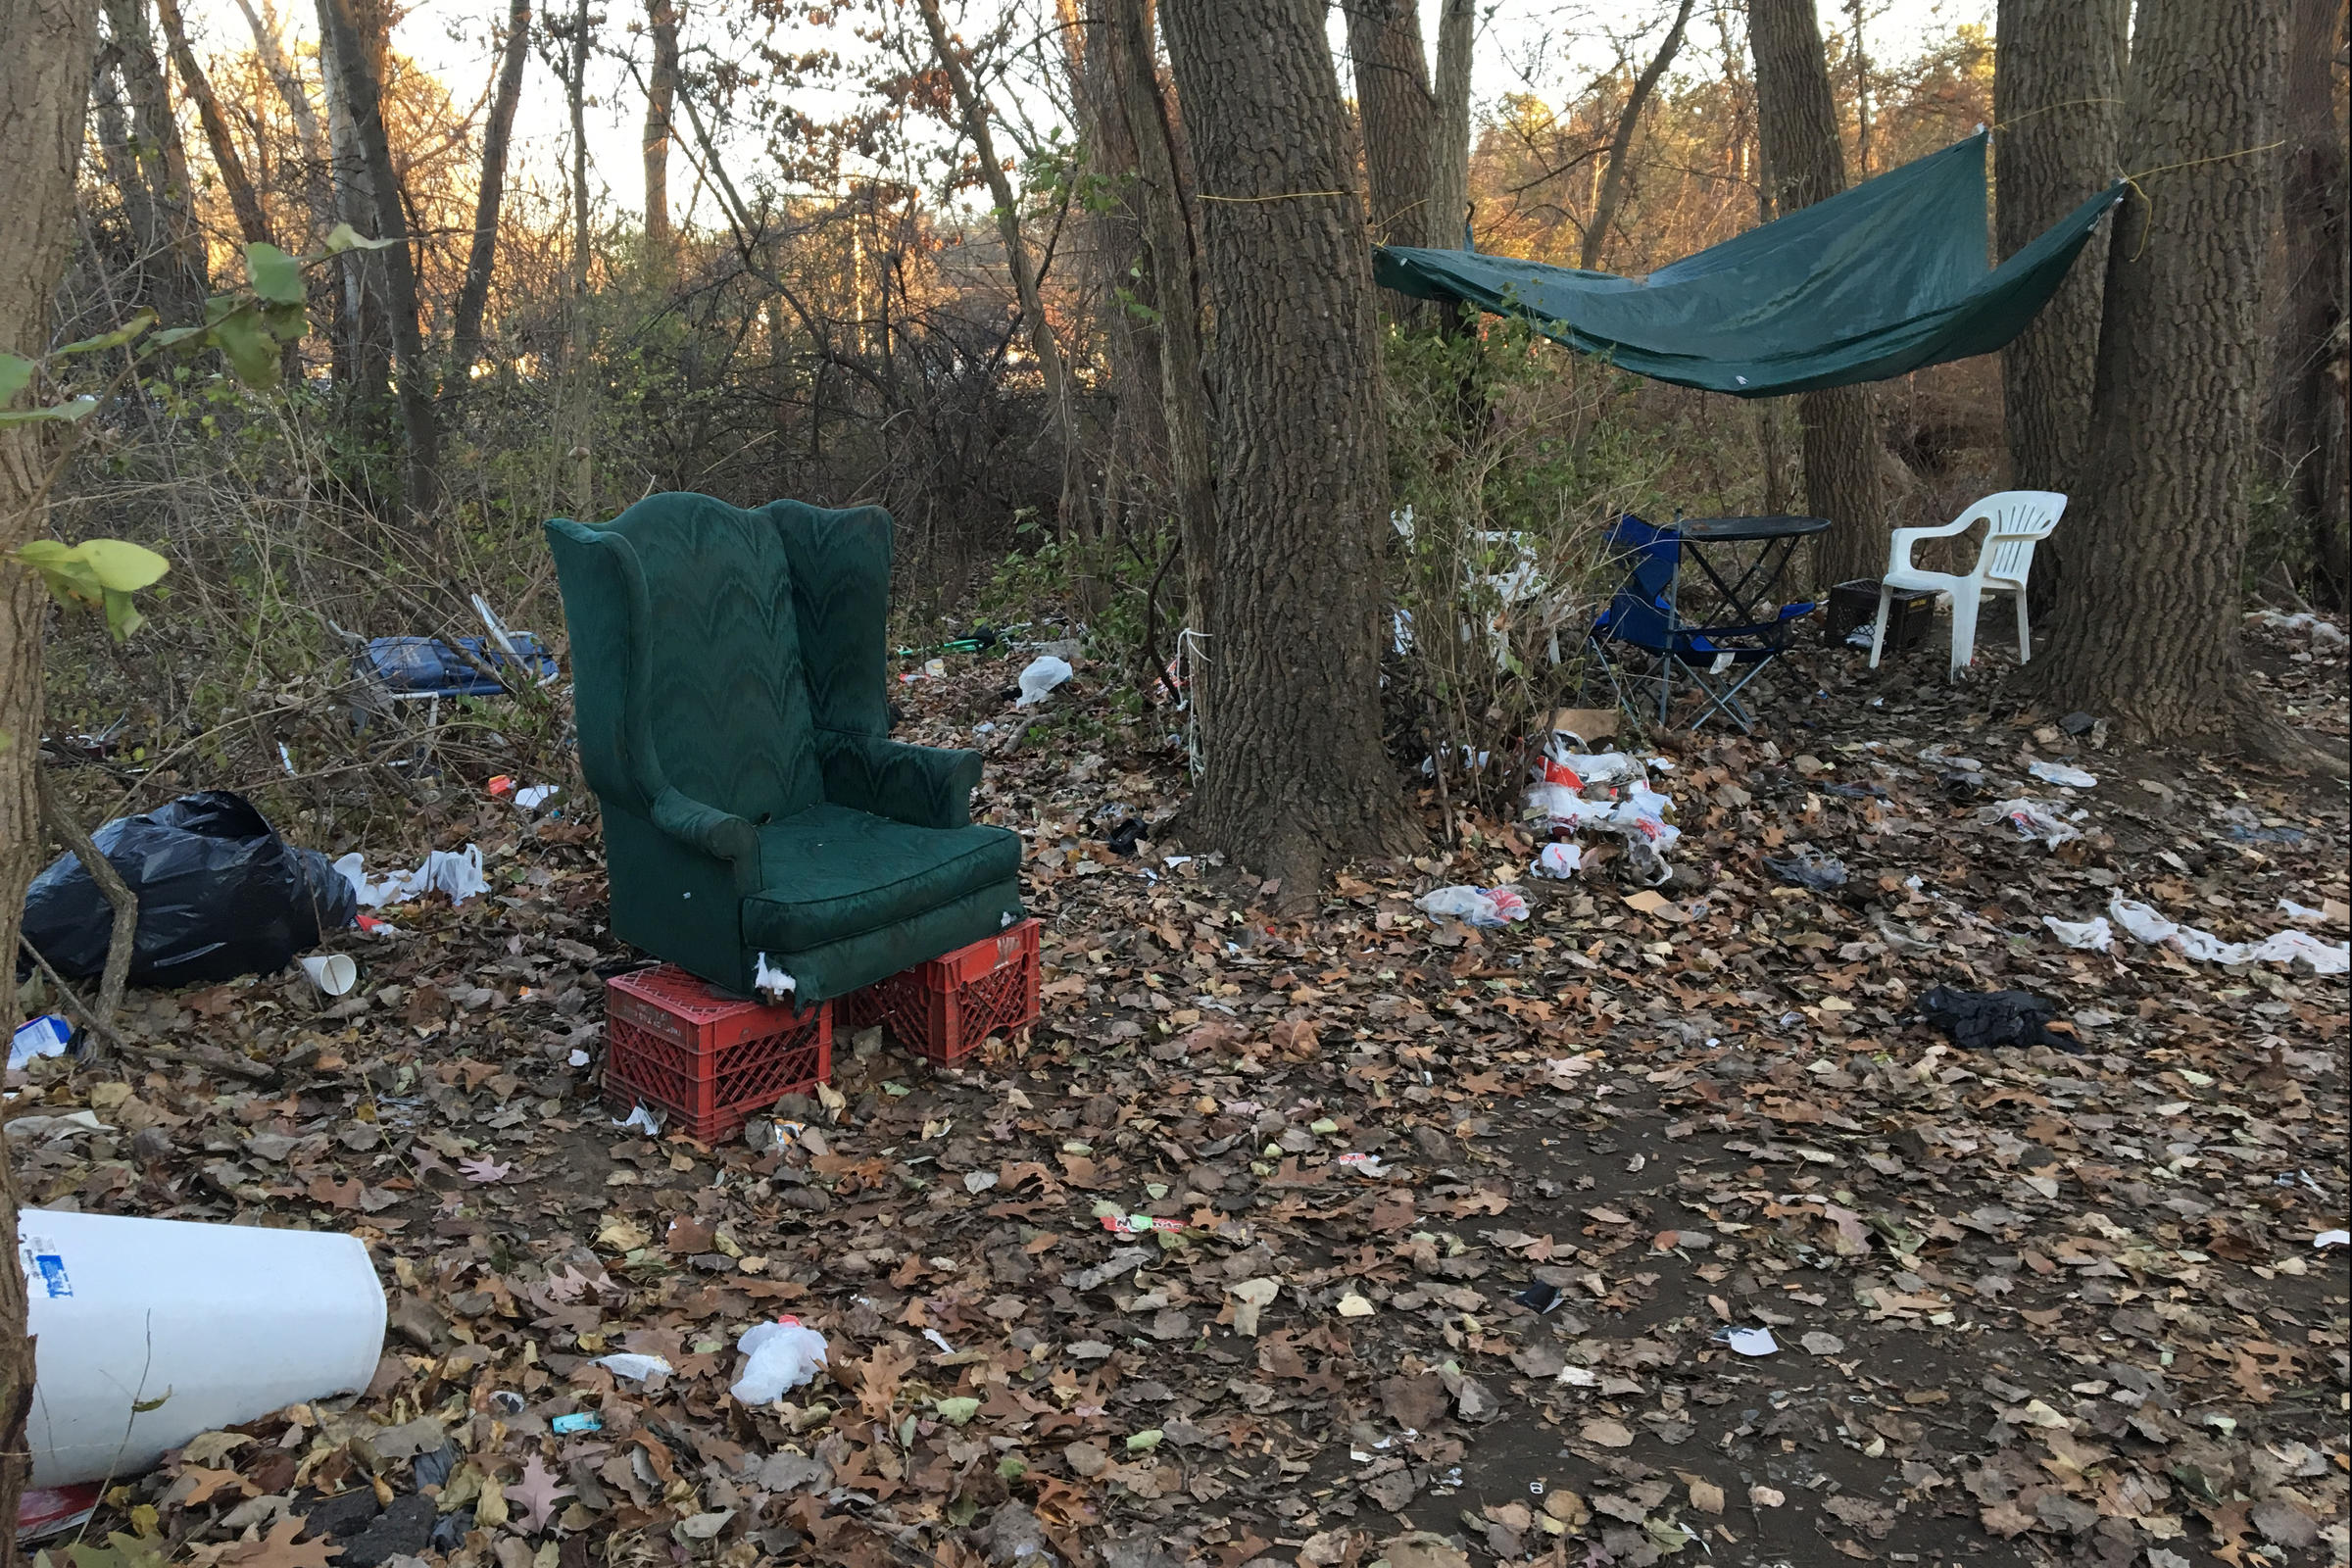 rural homelessness Dealing with homelessness in rural areas may involve different issues than in urban areas but ultimately the solution comes down to being the.